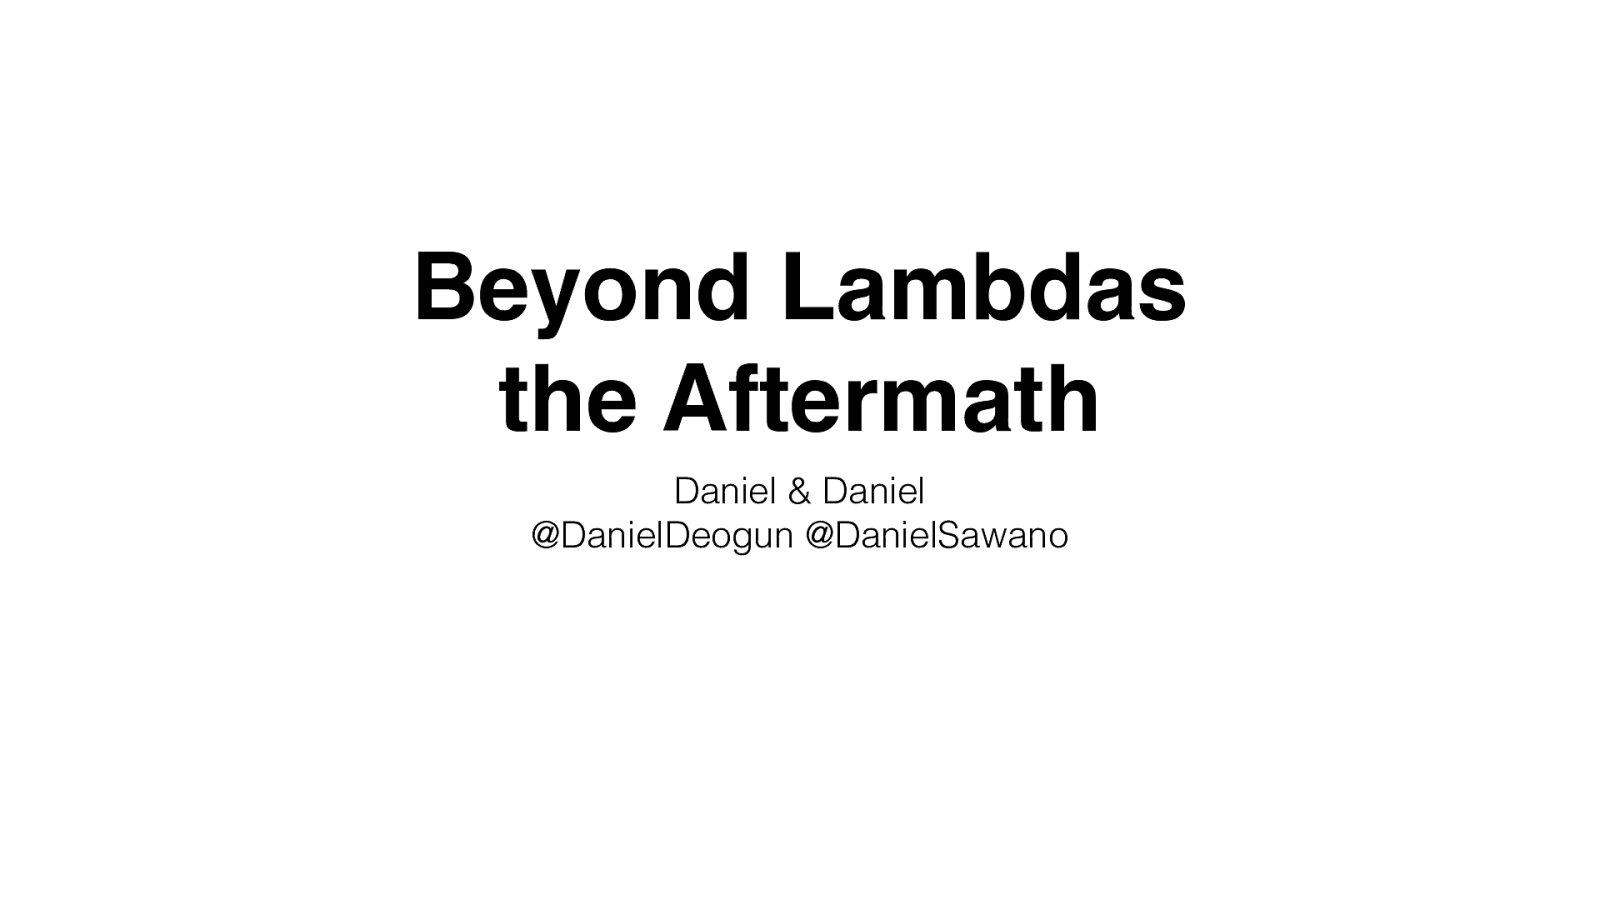 Beyond Lambdas - the Aftermath